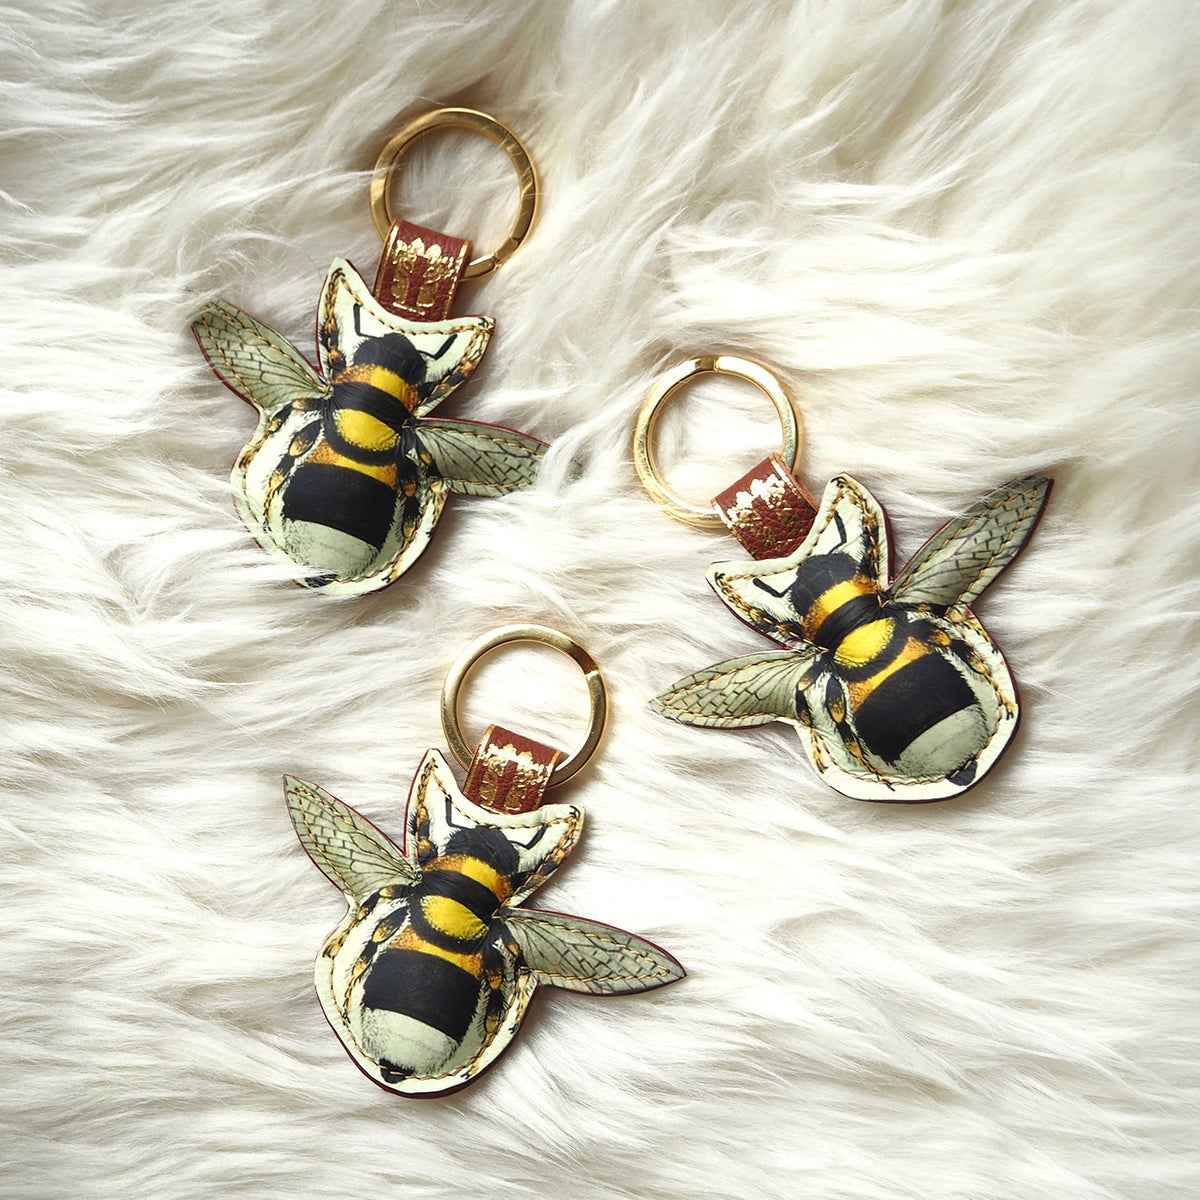 Leather Key Ring / Bag Charm - Bee